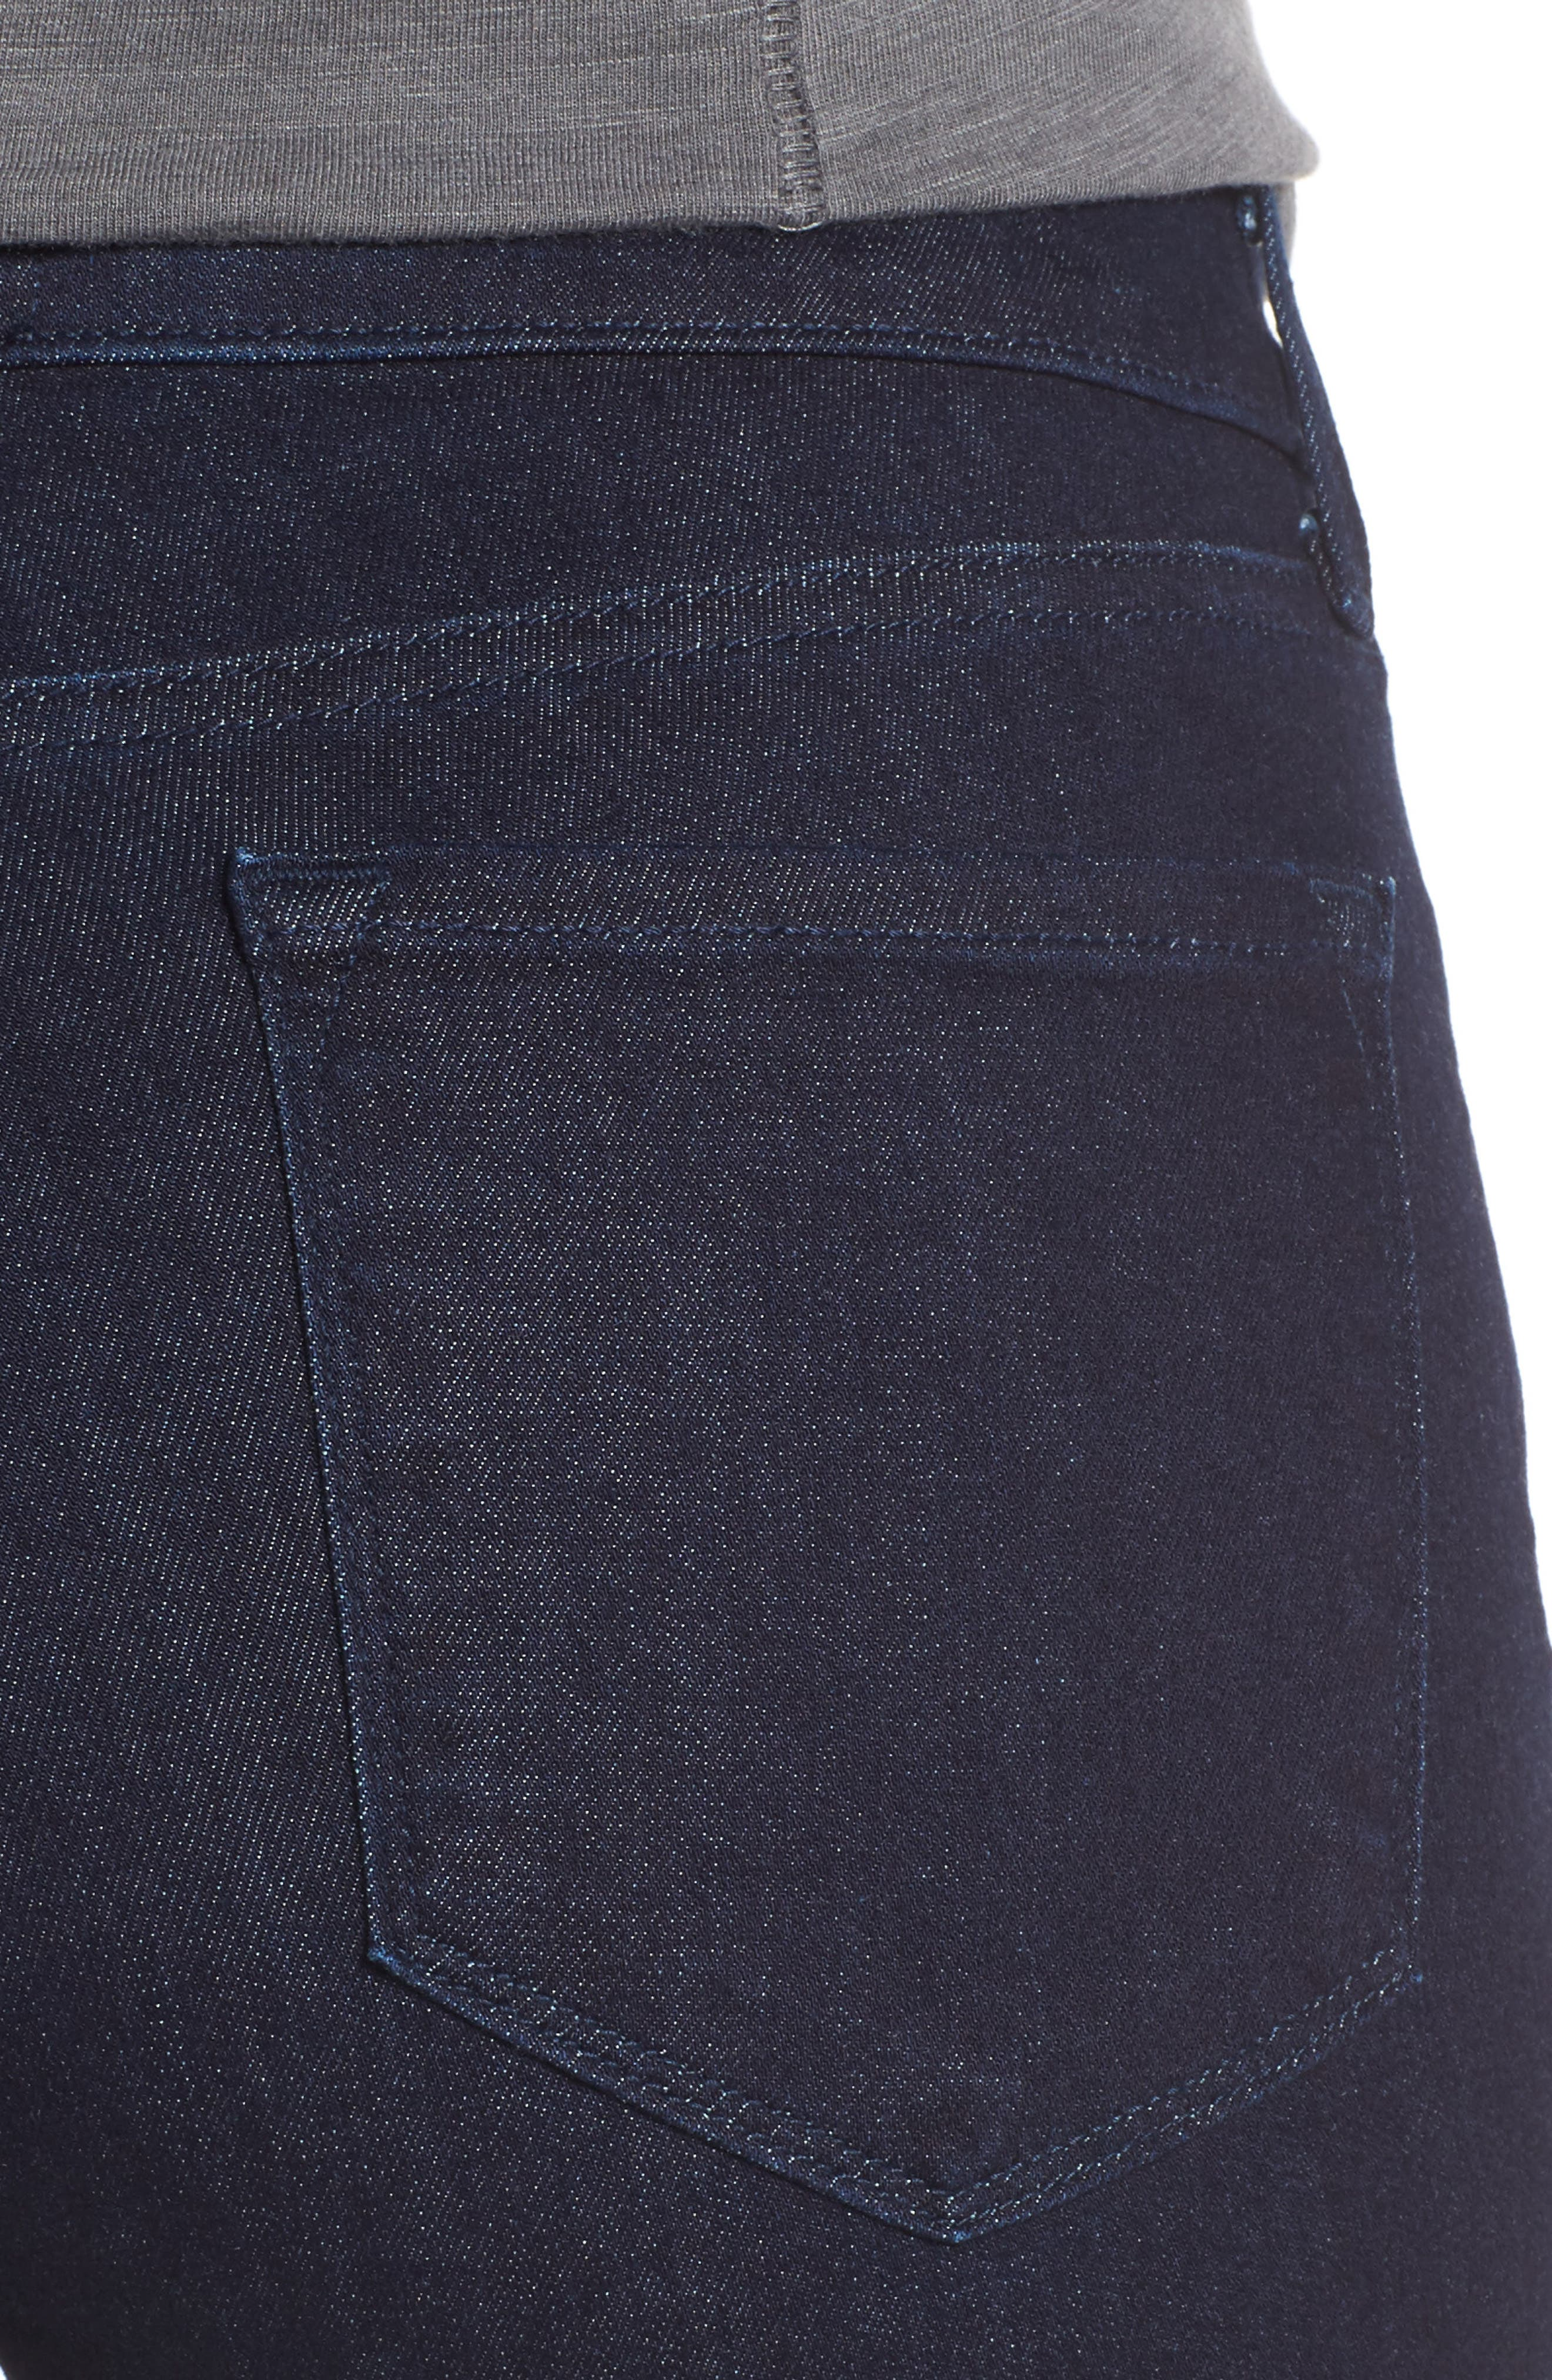 Marilyn Stretch Straight Leg Jeans,                             Alternate thumbnail 4, color,                             Rinse